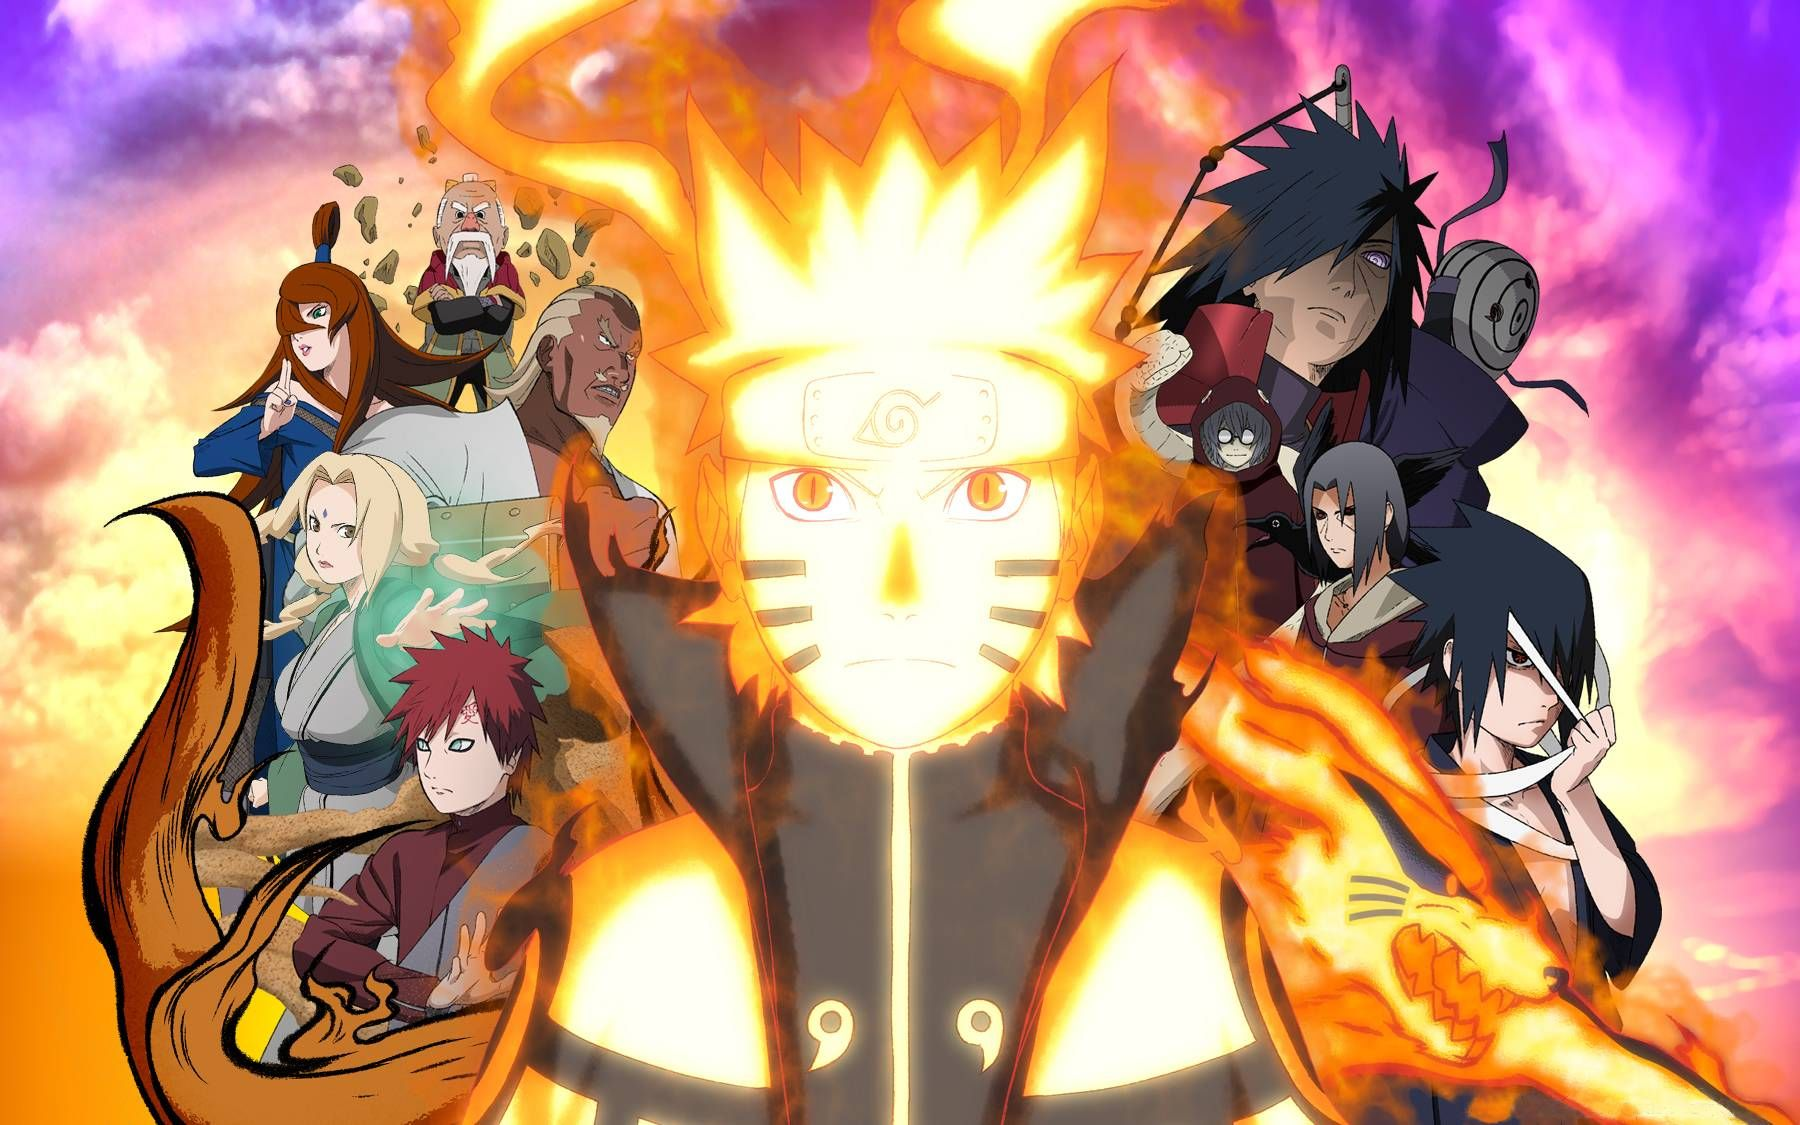 naruto shippuden wallpapers free download